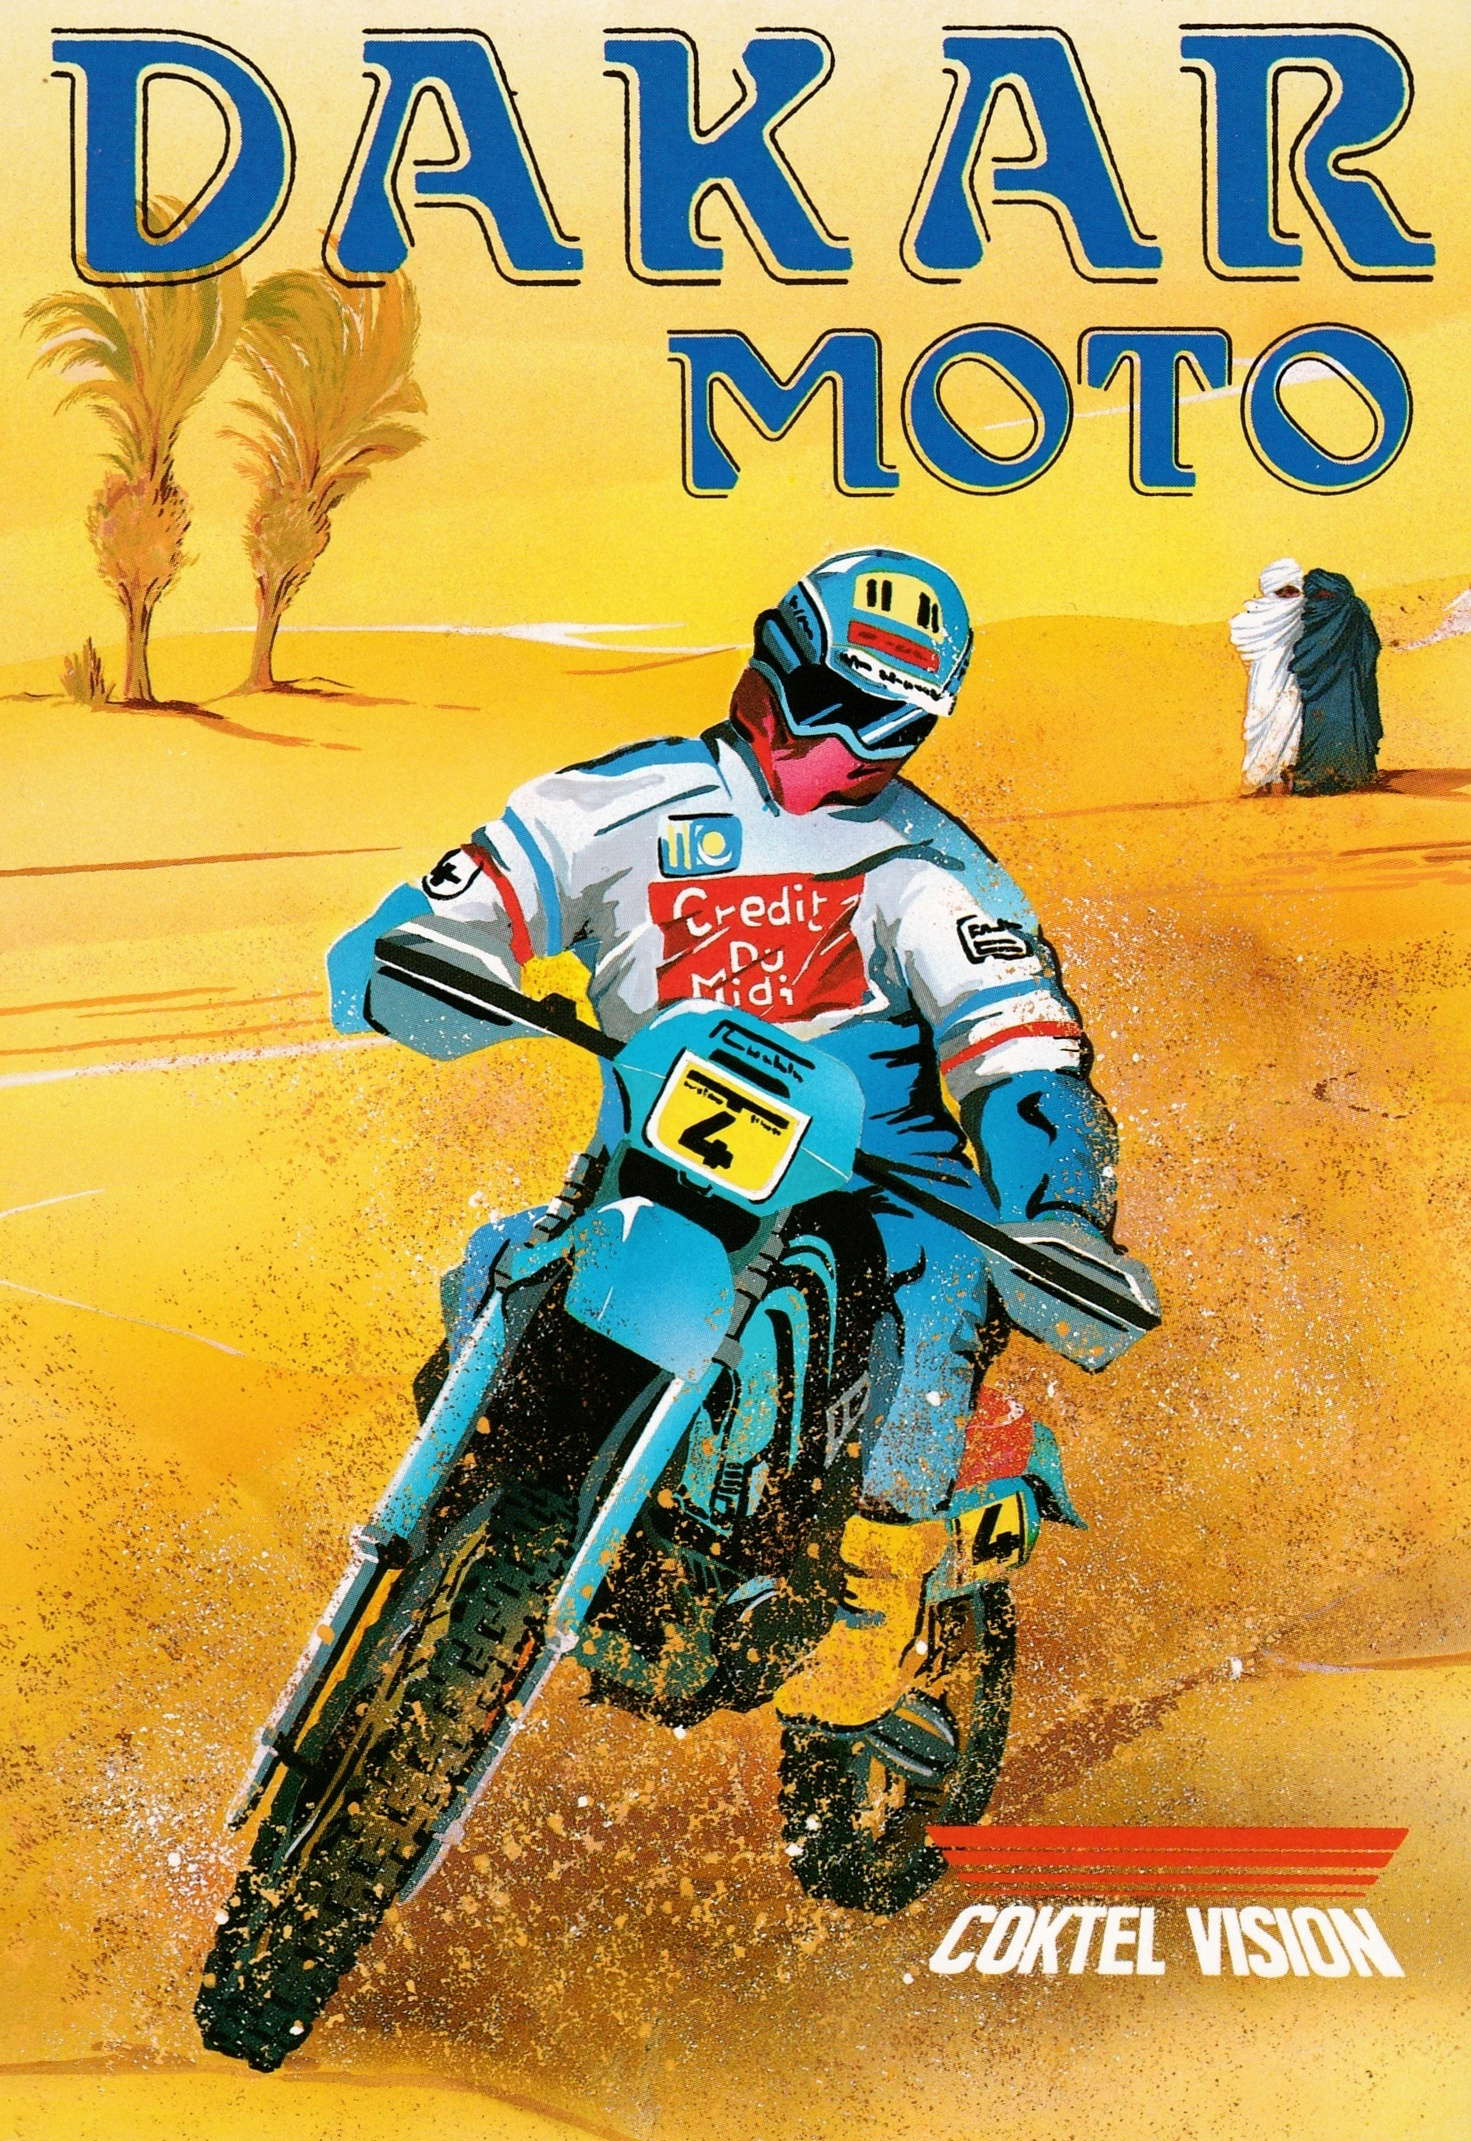 cover of the Amstrad CPC game Dakar Moto  by GameBase CPC